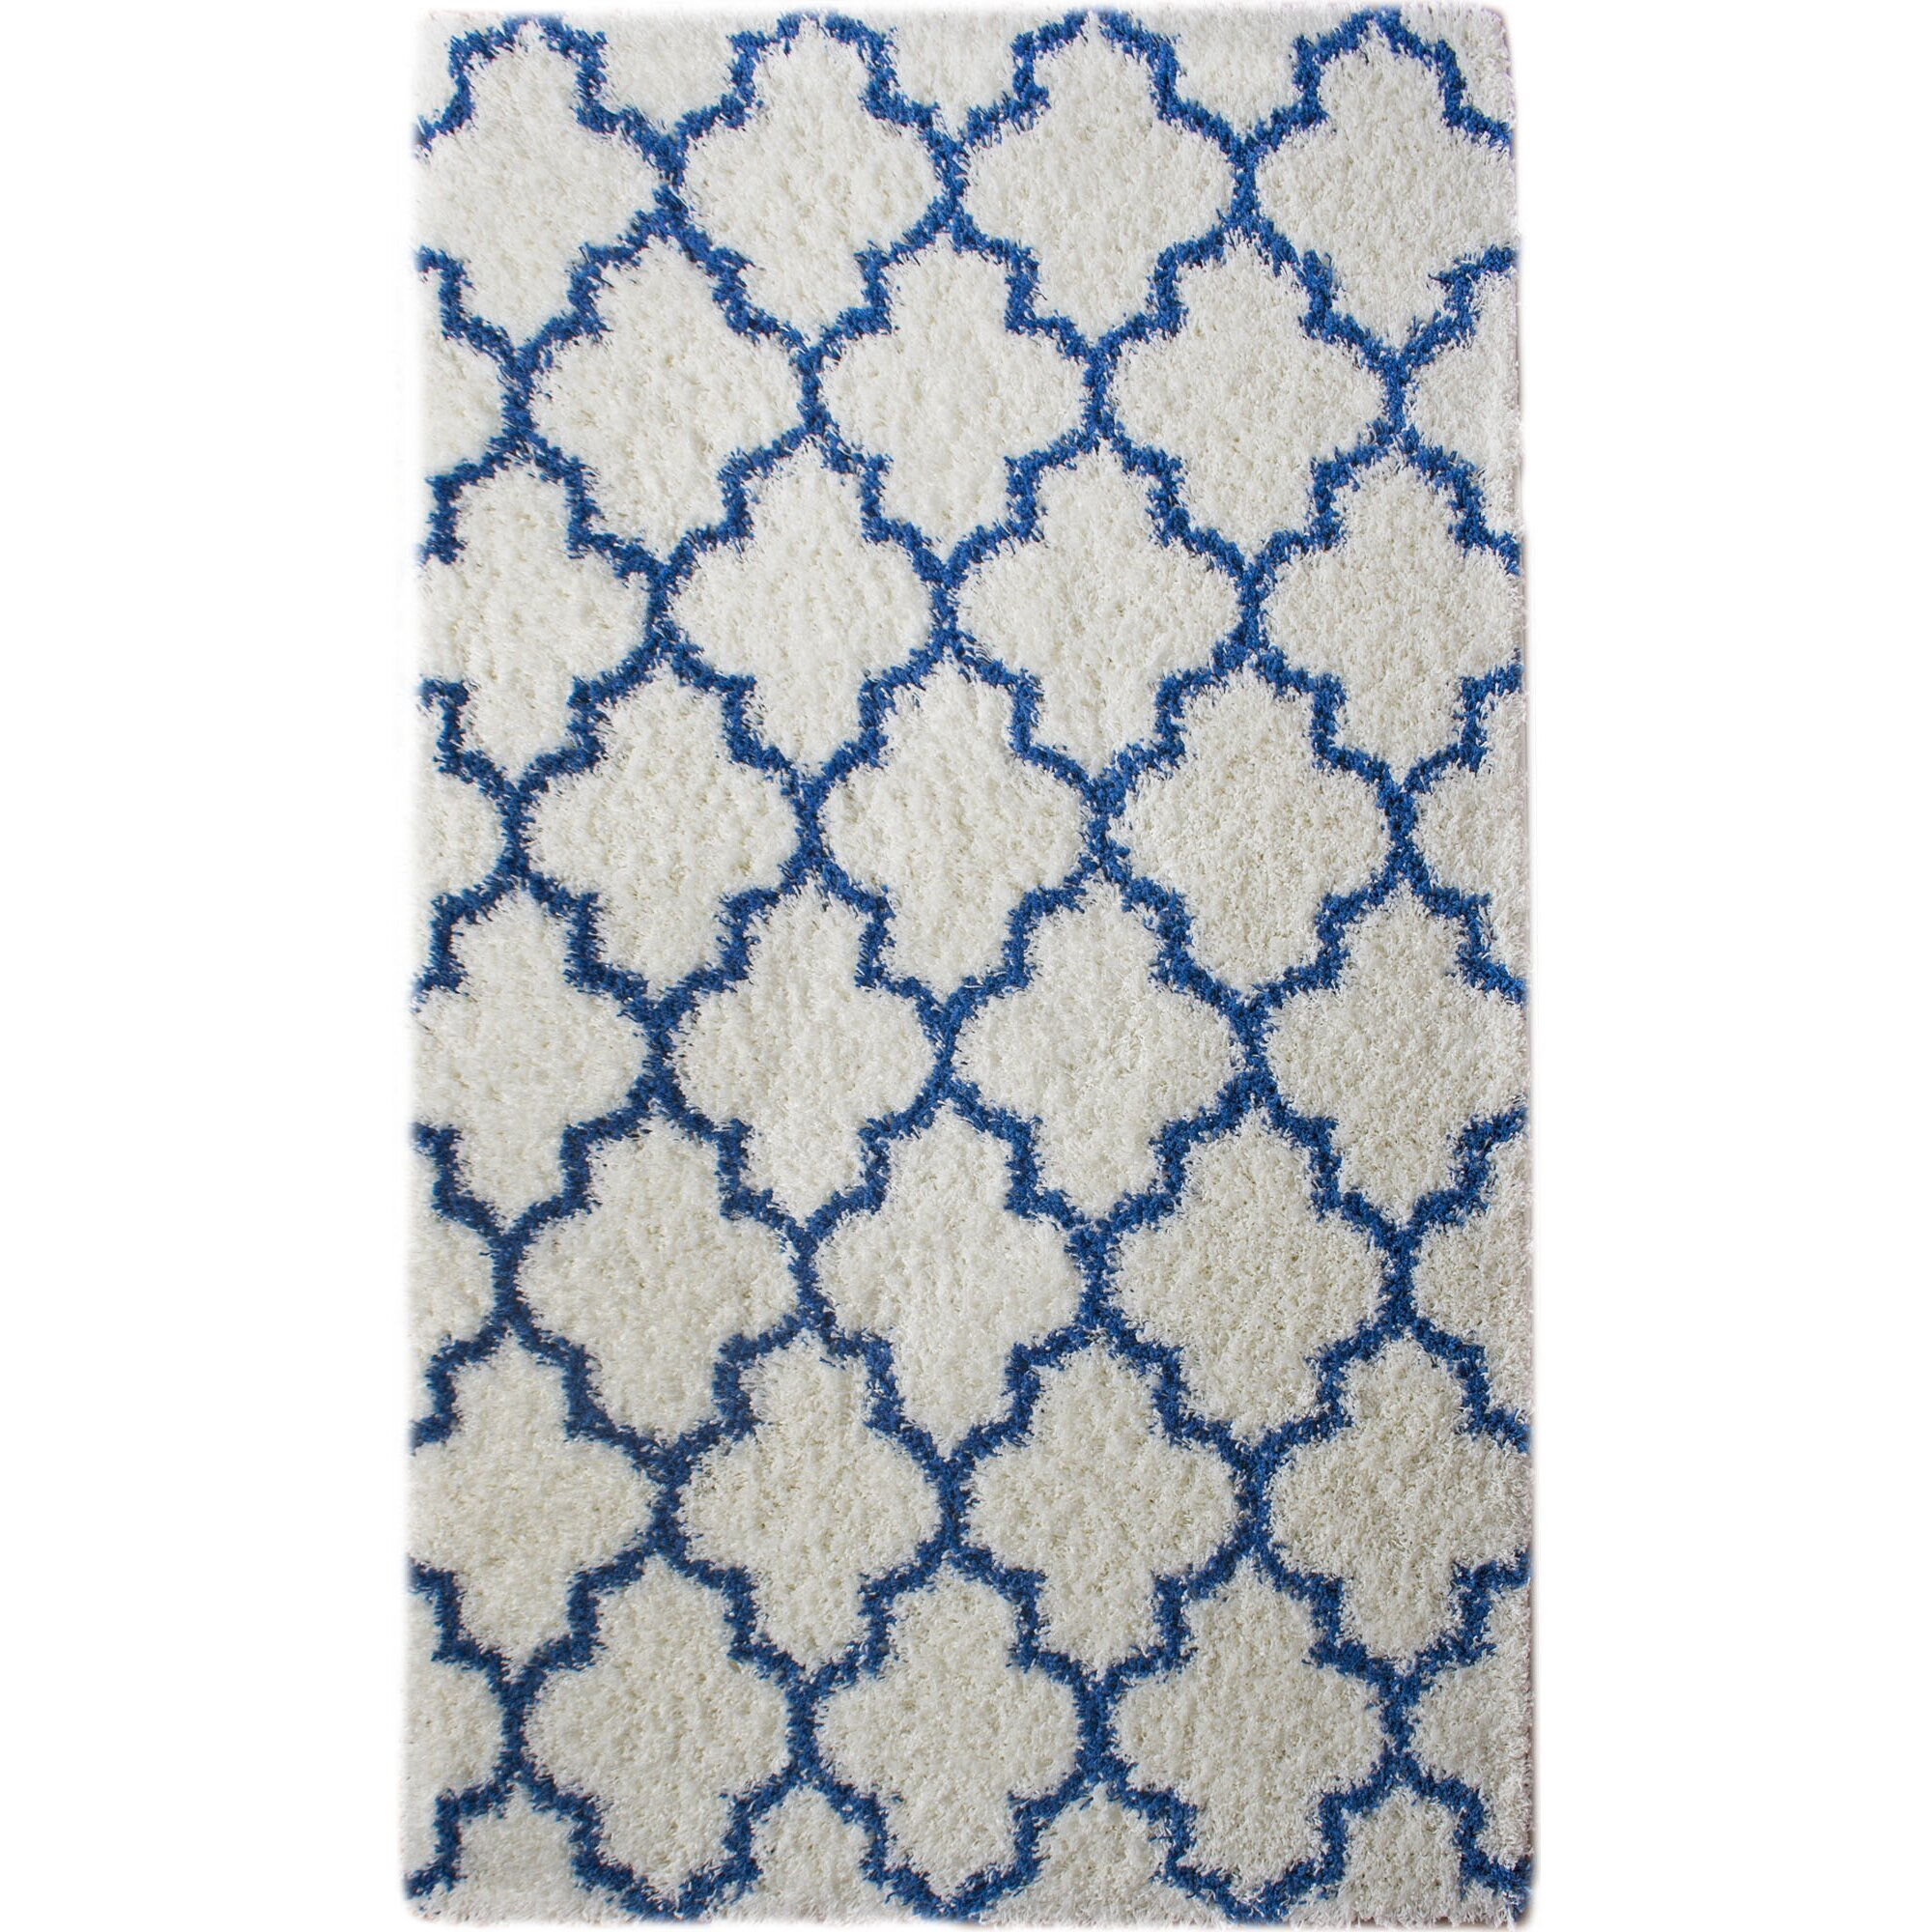 Blue and white area rug roselawnlutheran for Blue and white area rugs